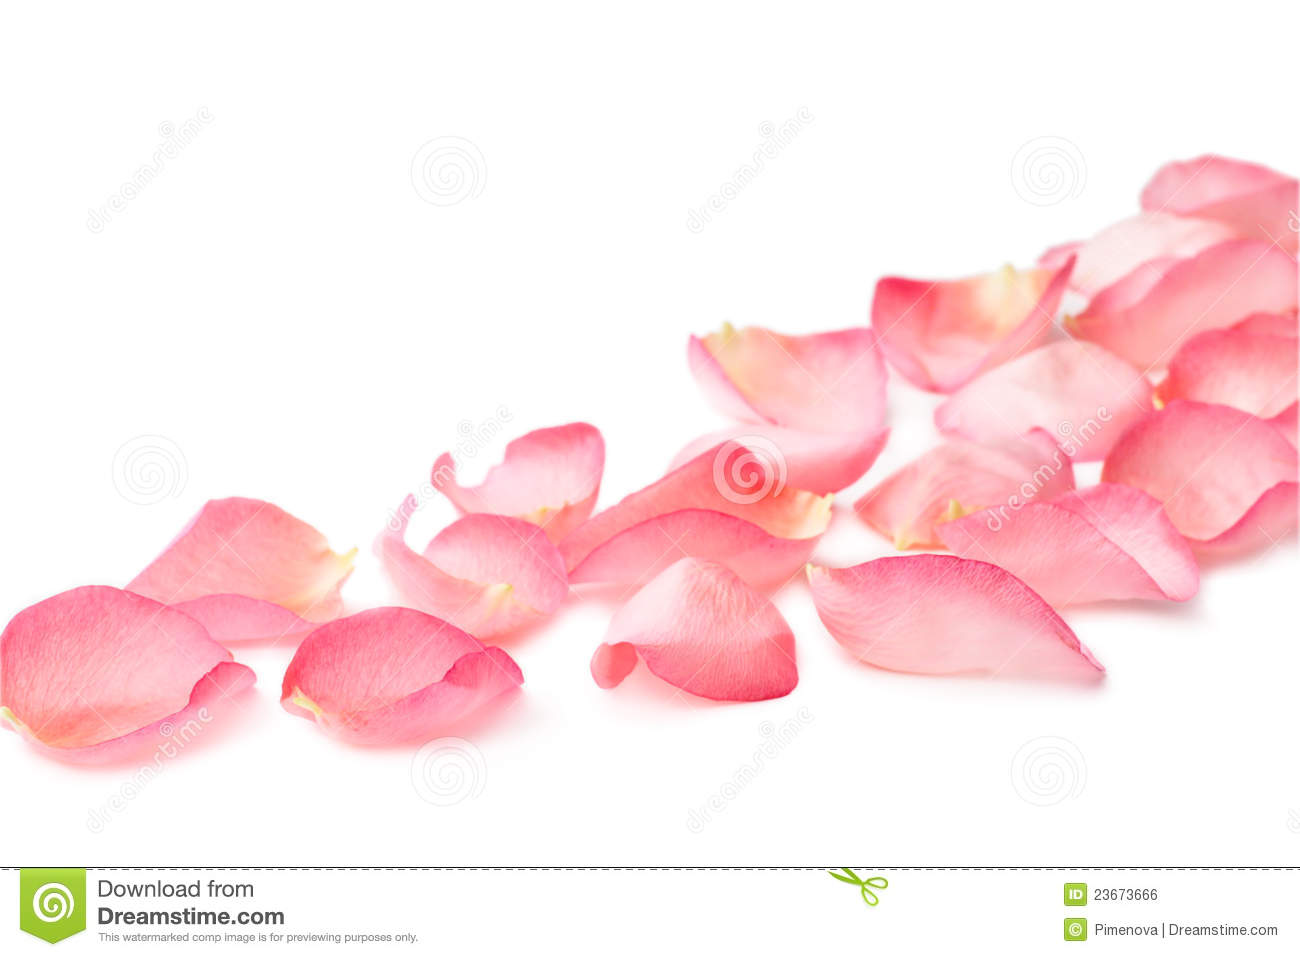 Pink rose petals on white background.